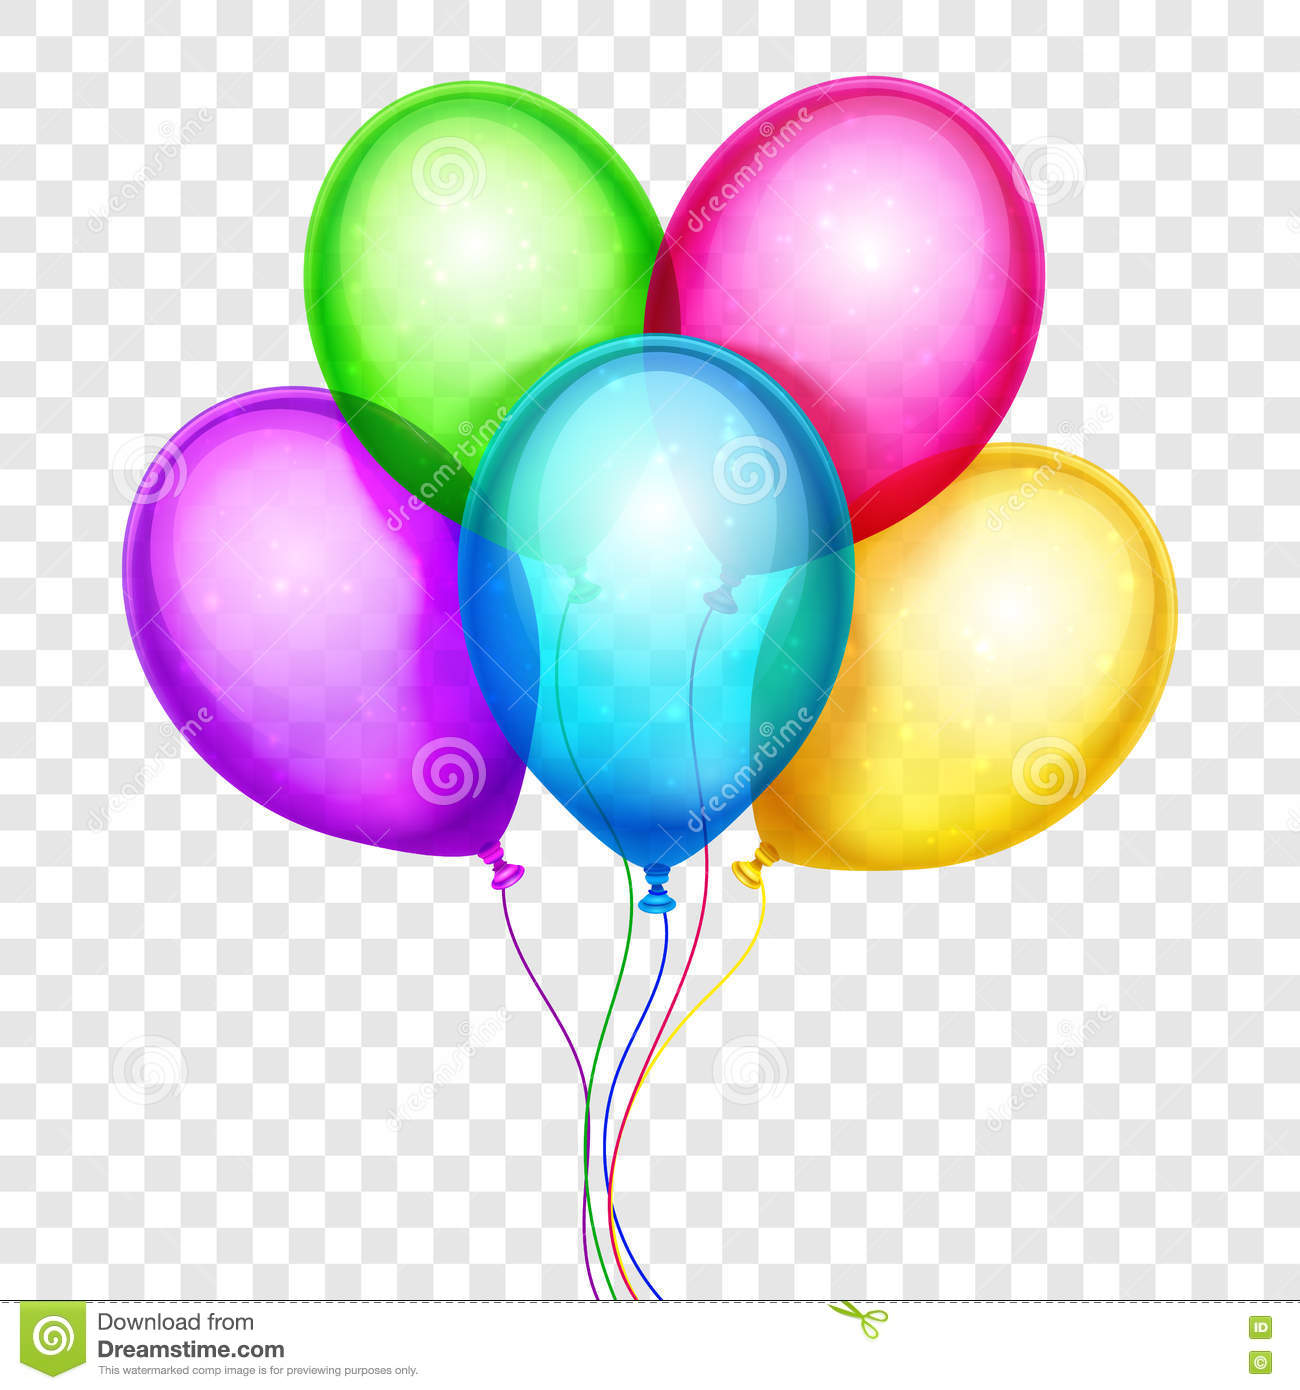 Transparent station . Balloons clipart clear background